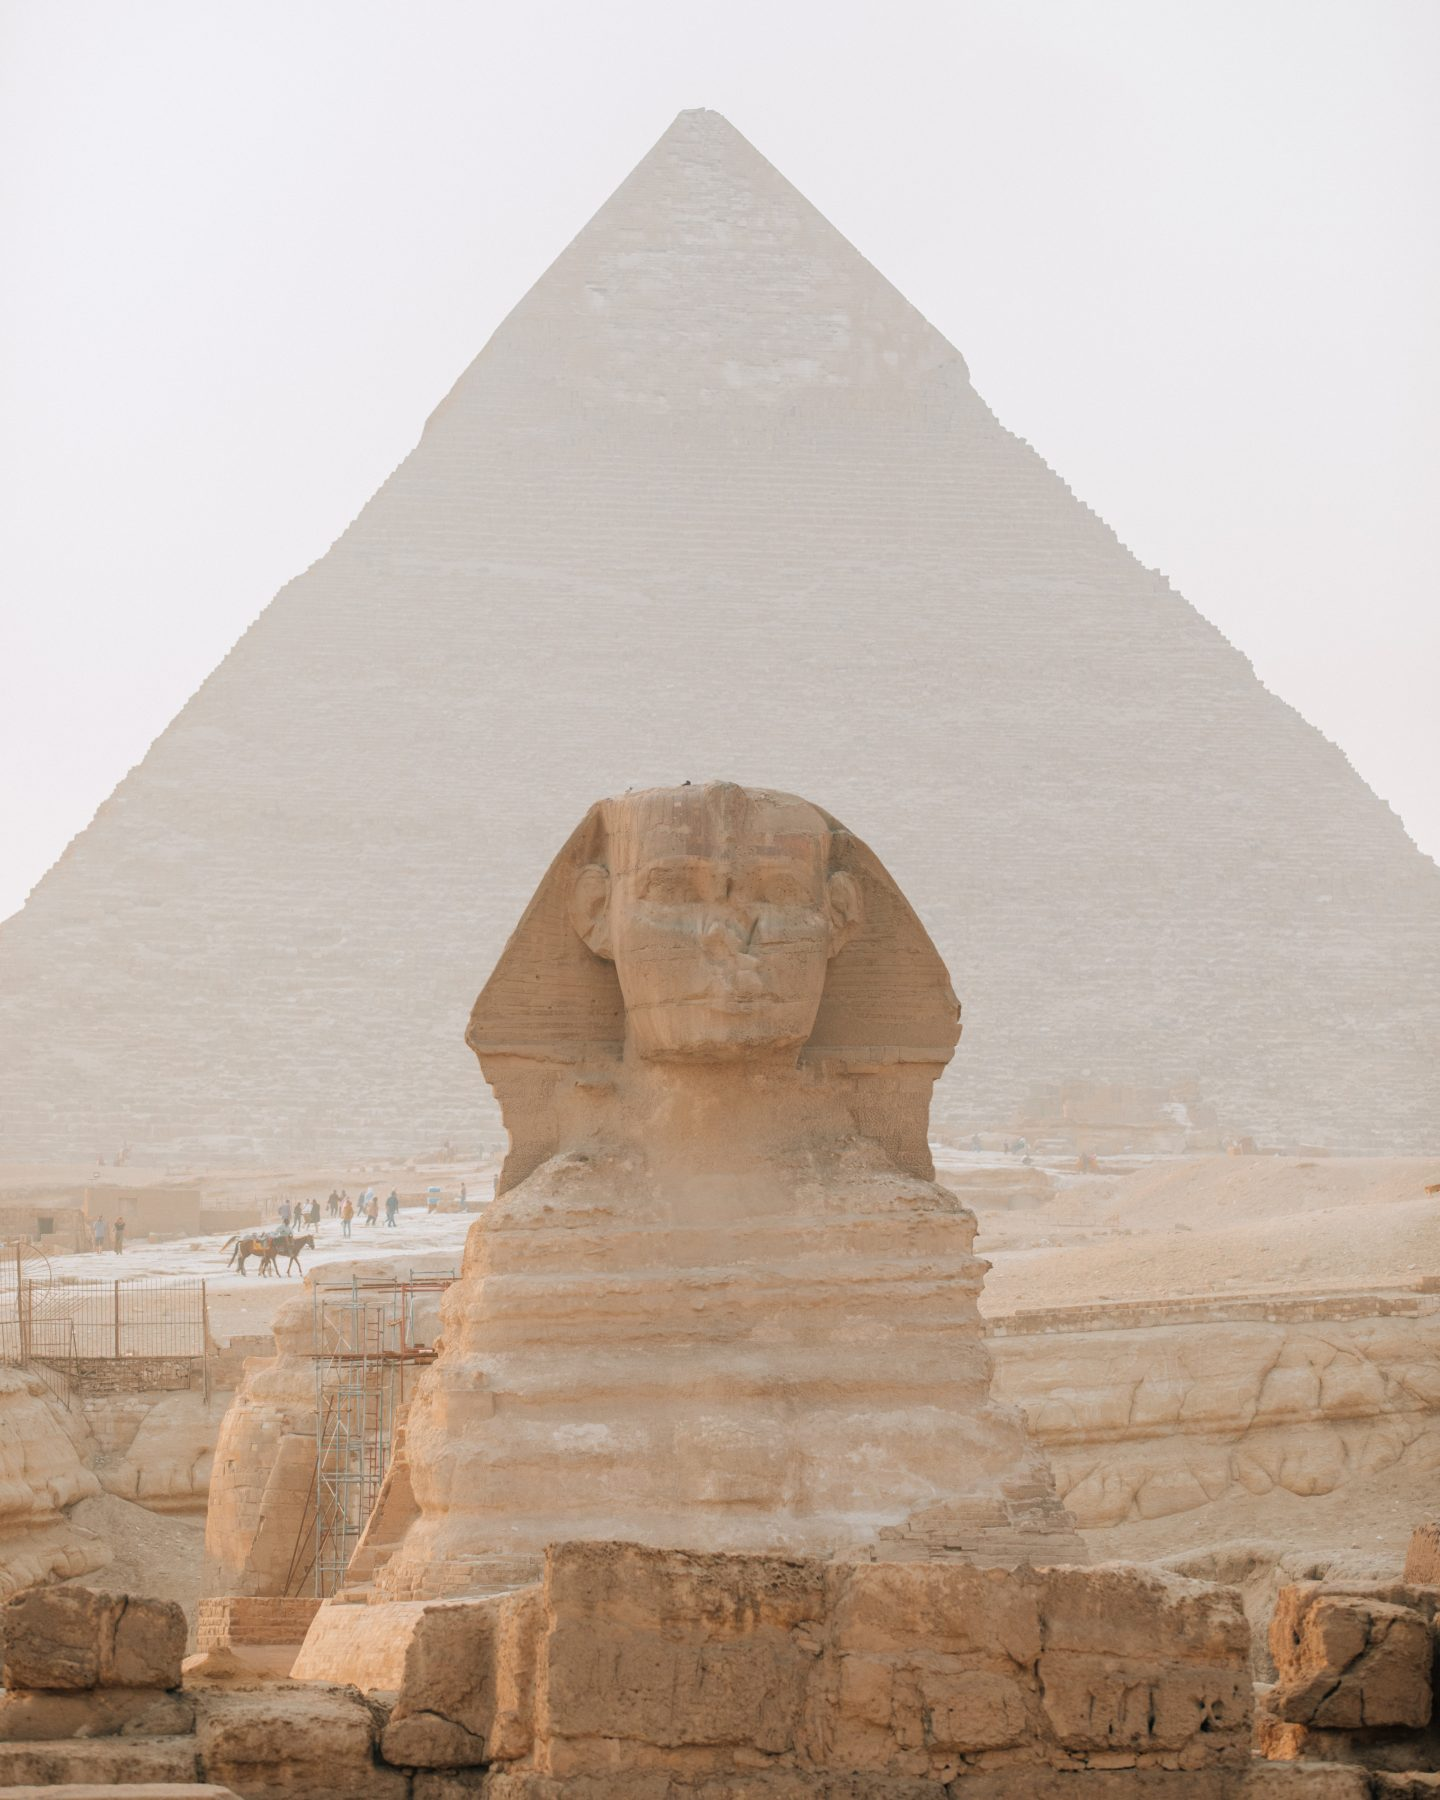 The Sphinx in front of the Great Pyramid in Egypt.